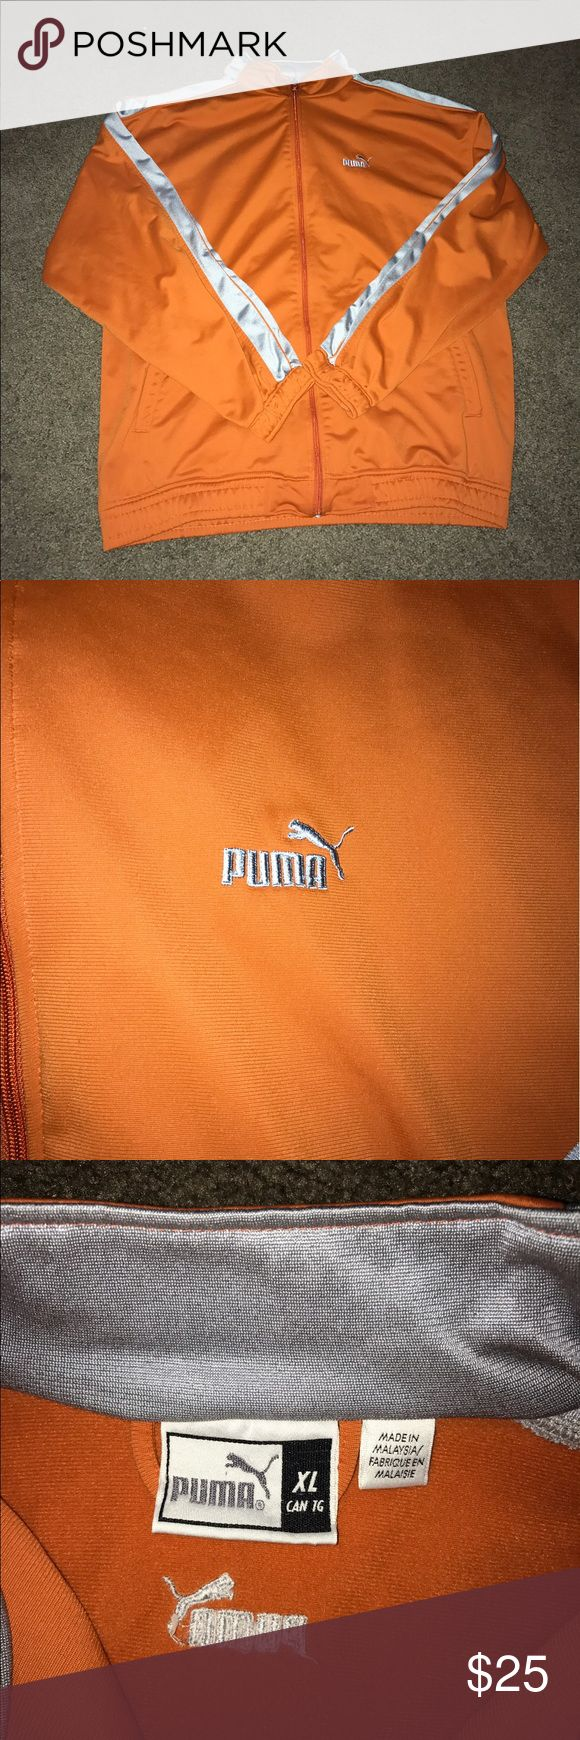 Puma XL orange zip up jacket In excellent condition Puma Jackets & Coats Performance Jackets